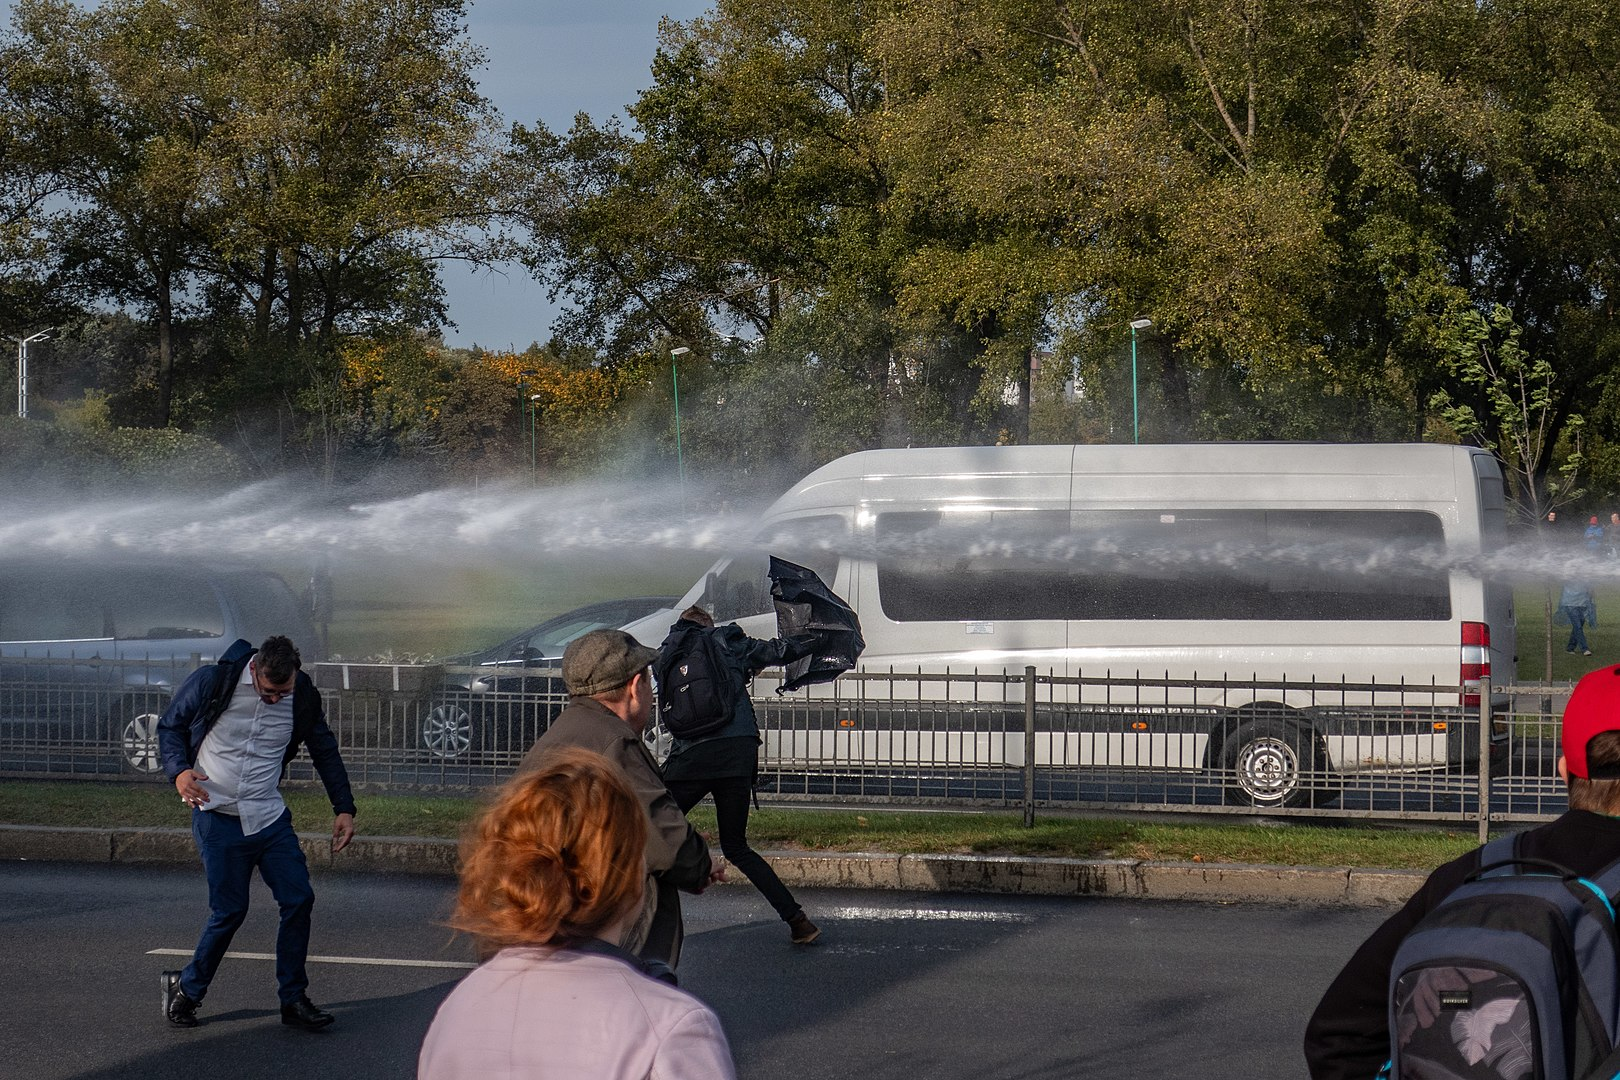 Photo: Use of water cannon during an anti-Lukashenko protest on October 4, 2020. Credit: Wikimedia Commons, Homoatrox